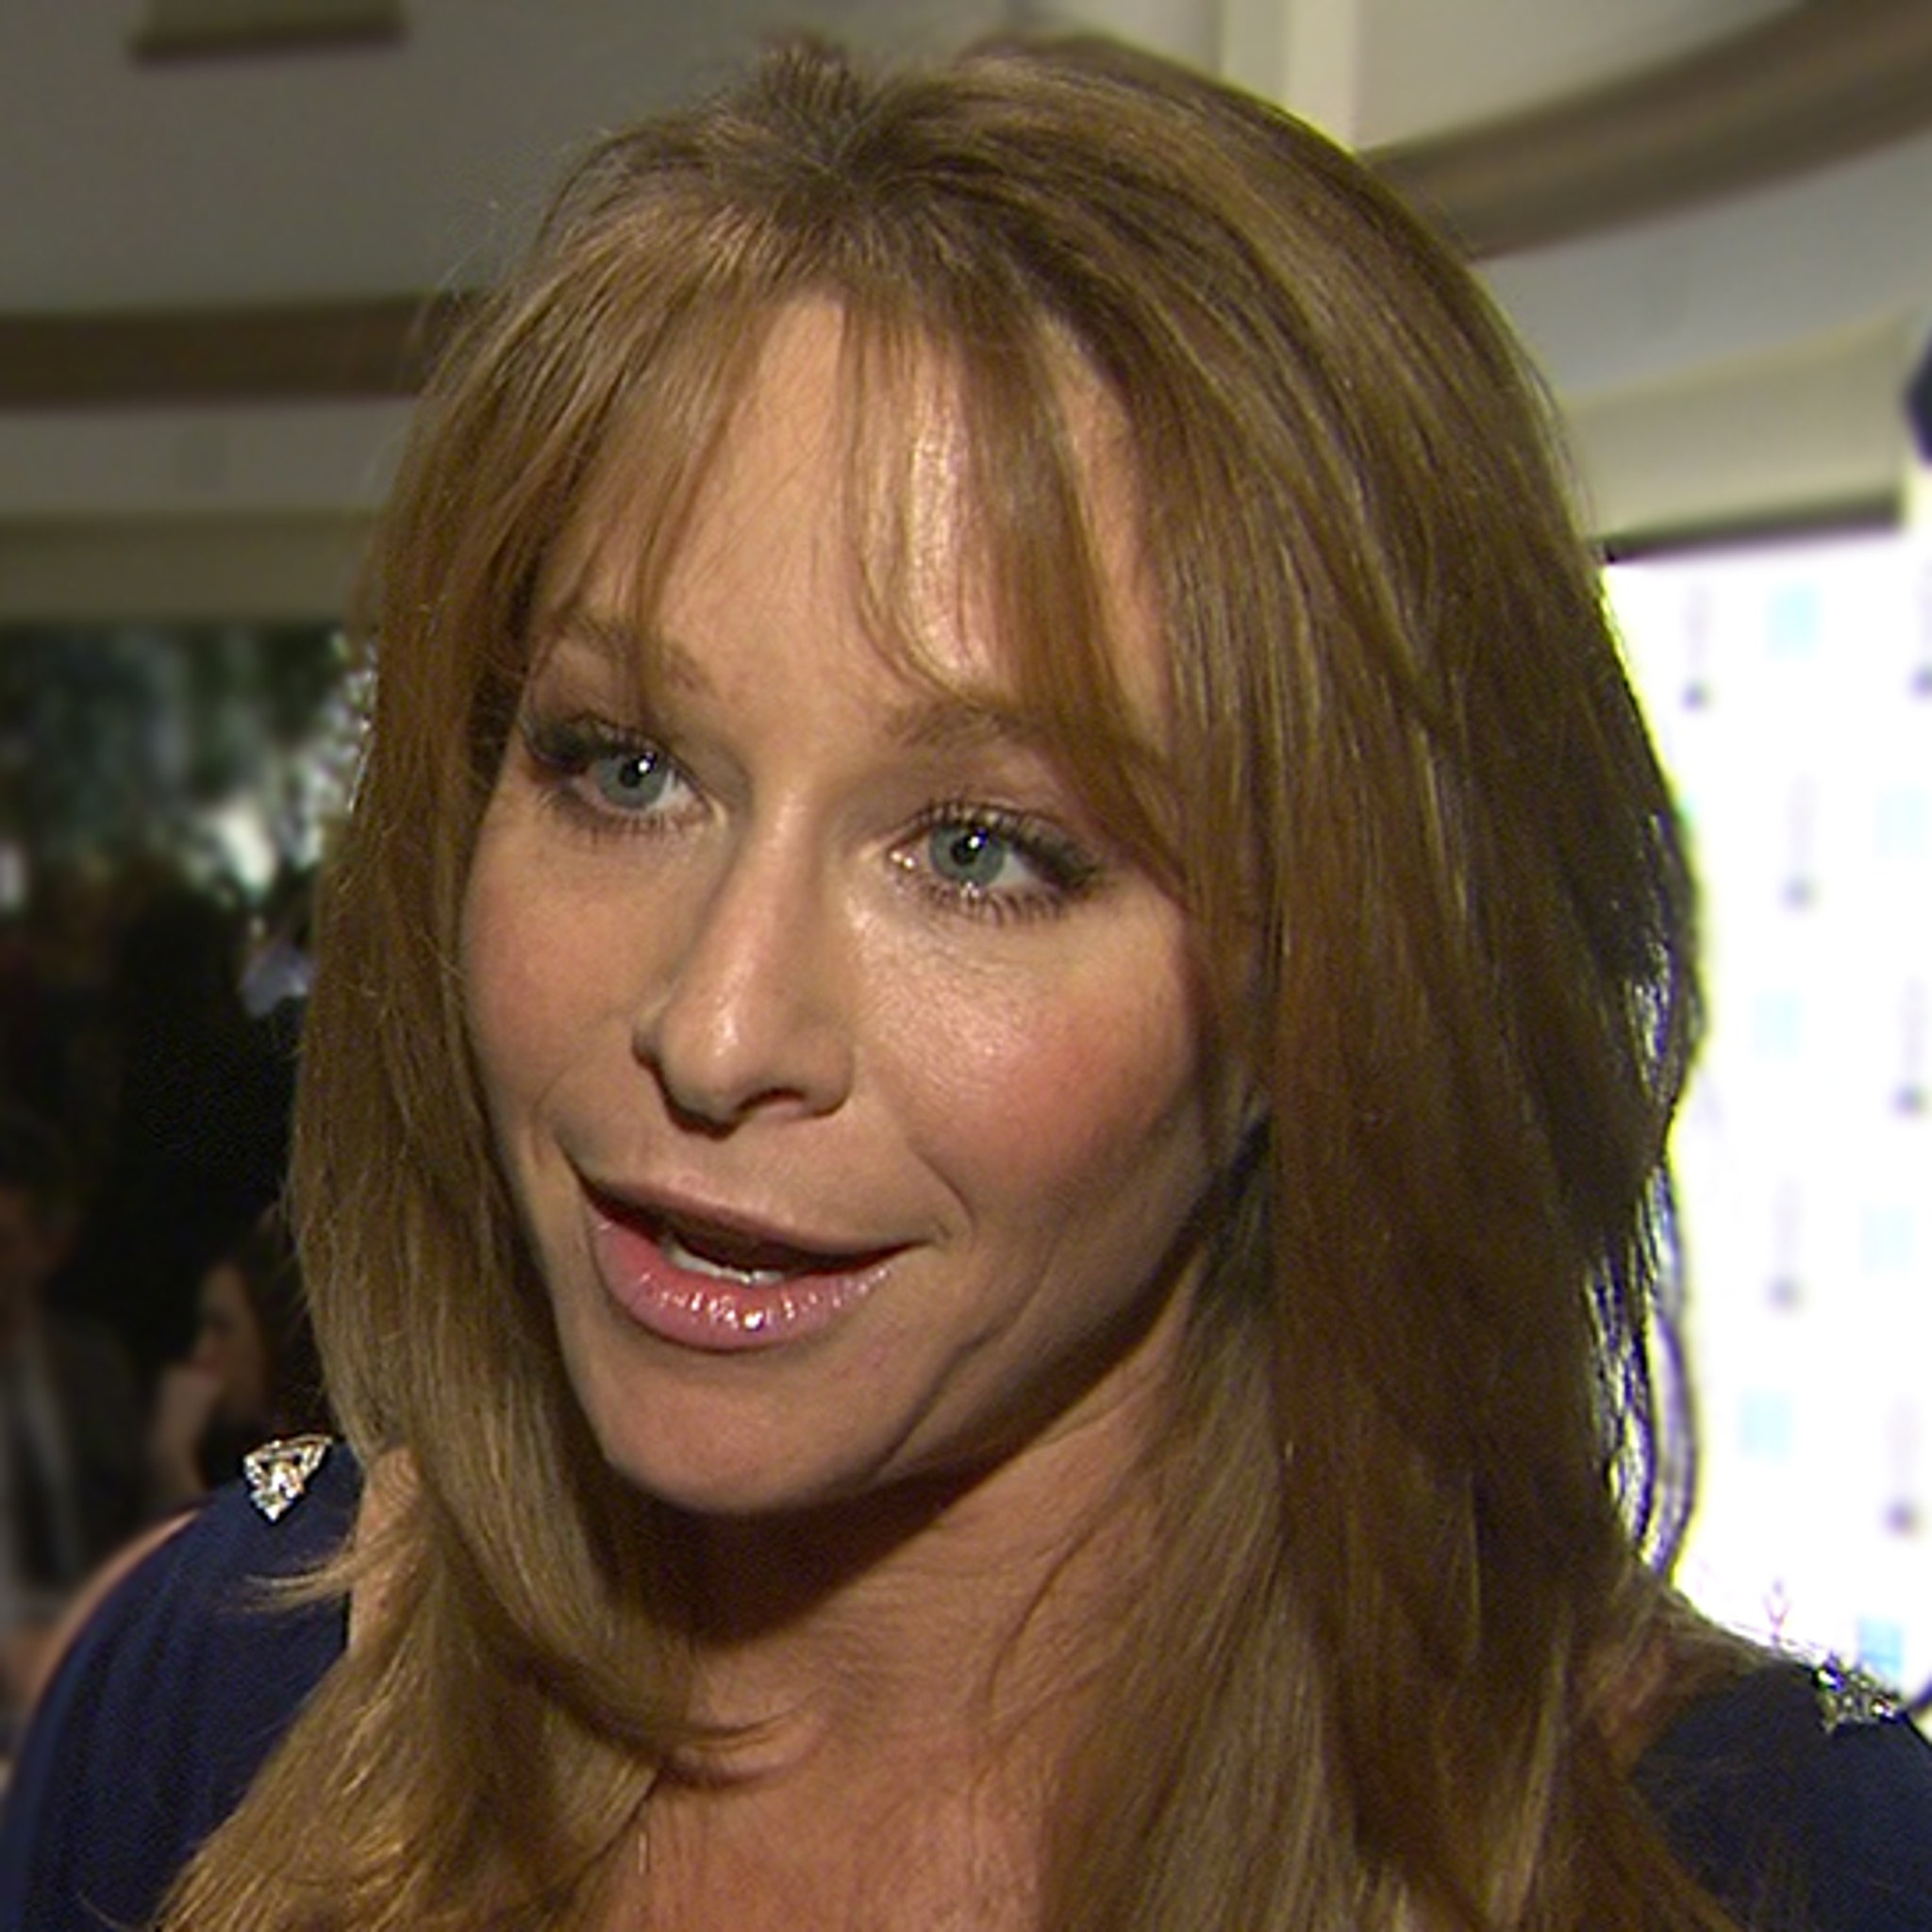 c262aaa30 'Melrose Place' Star Jamie Luner Sued for $250 Million for Allegedly  Sexually Assaulting 16-Year-Old